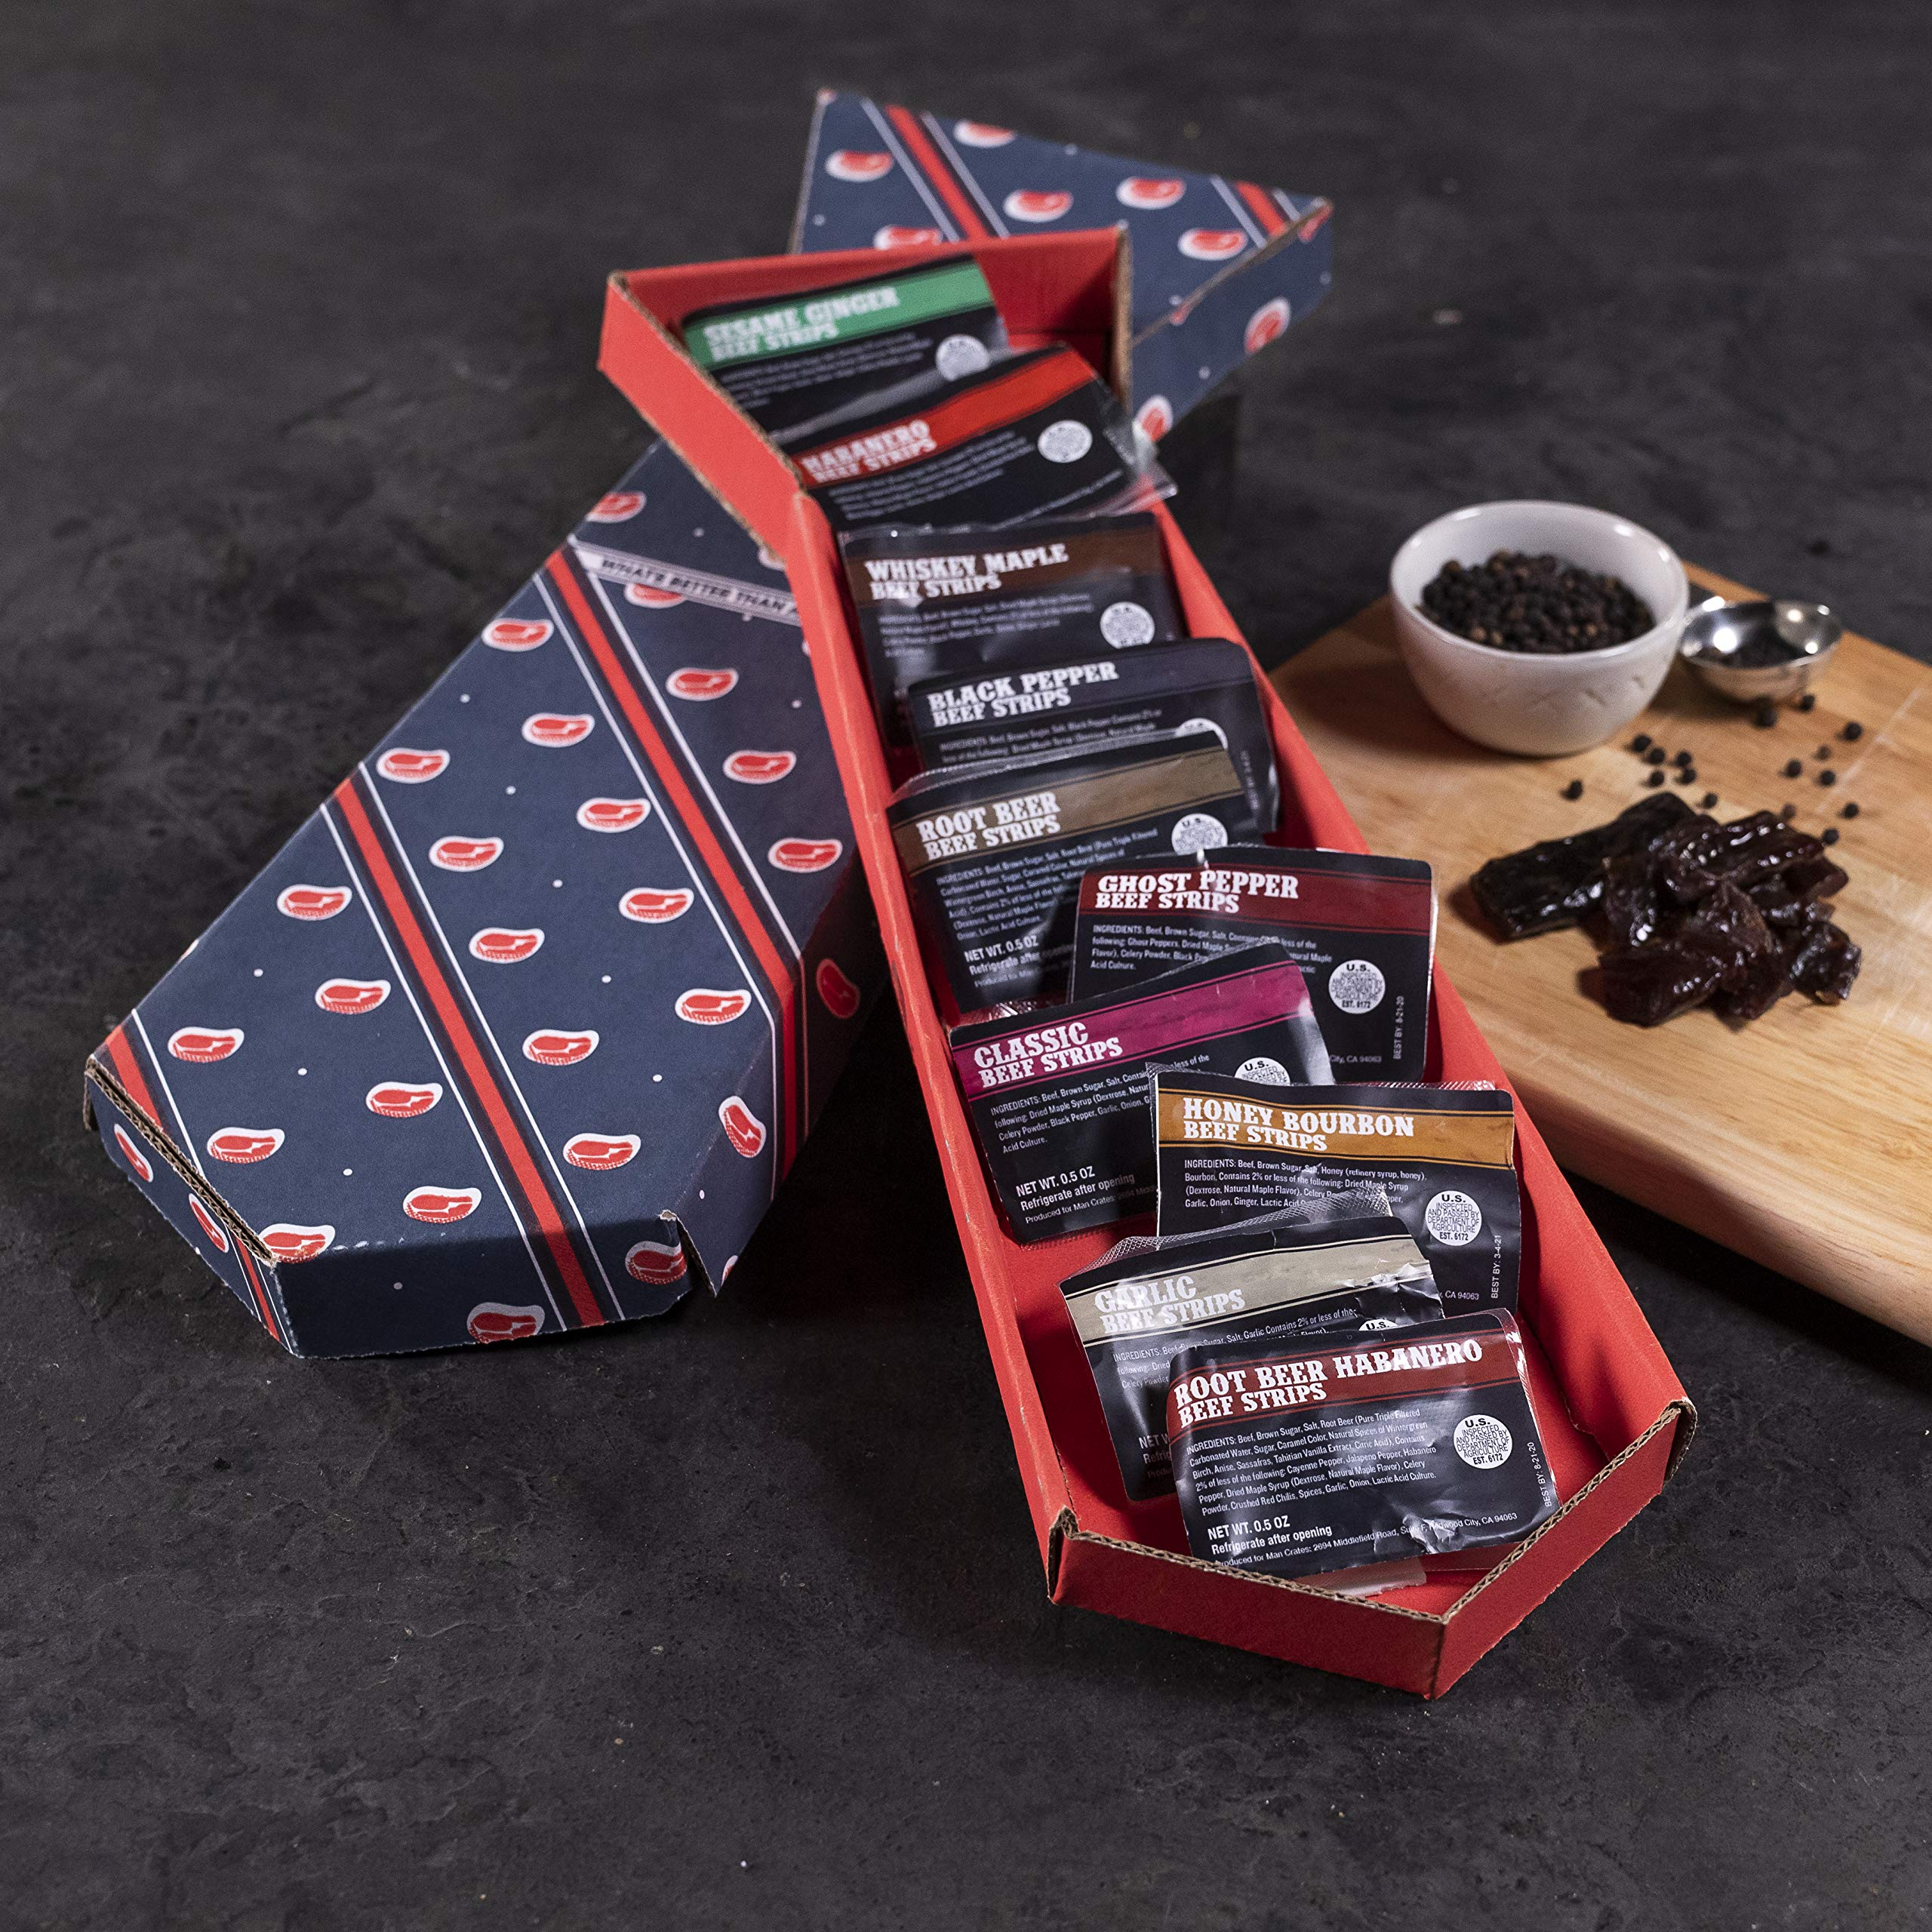 Man Crates Jerky Tie - Fun Gift For Men - Includes 10 Delicious Beef Jerky Flavors - In A Delightfully Surprising Tie-Shaped Box by Man Crates (Image #3)